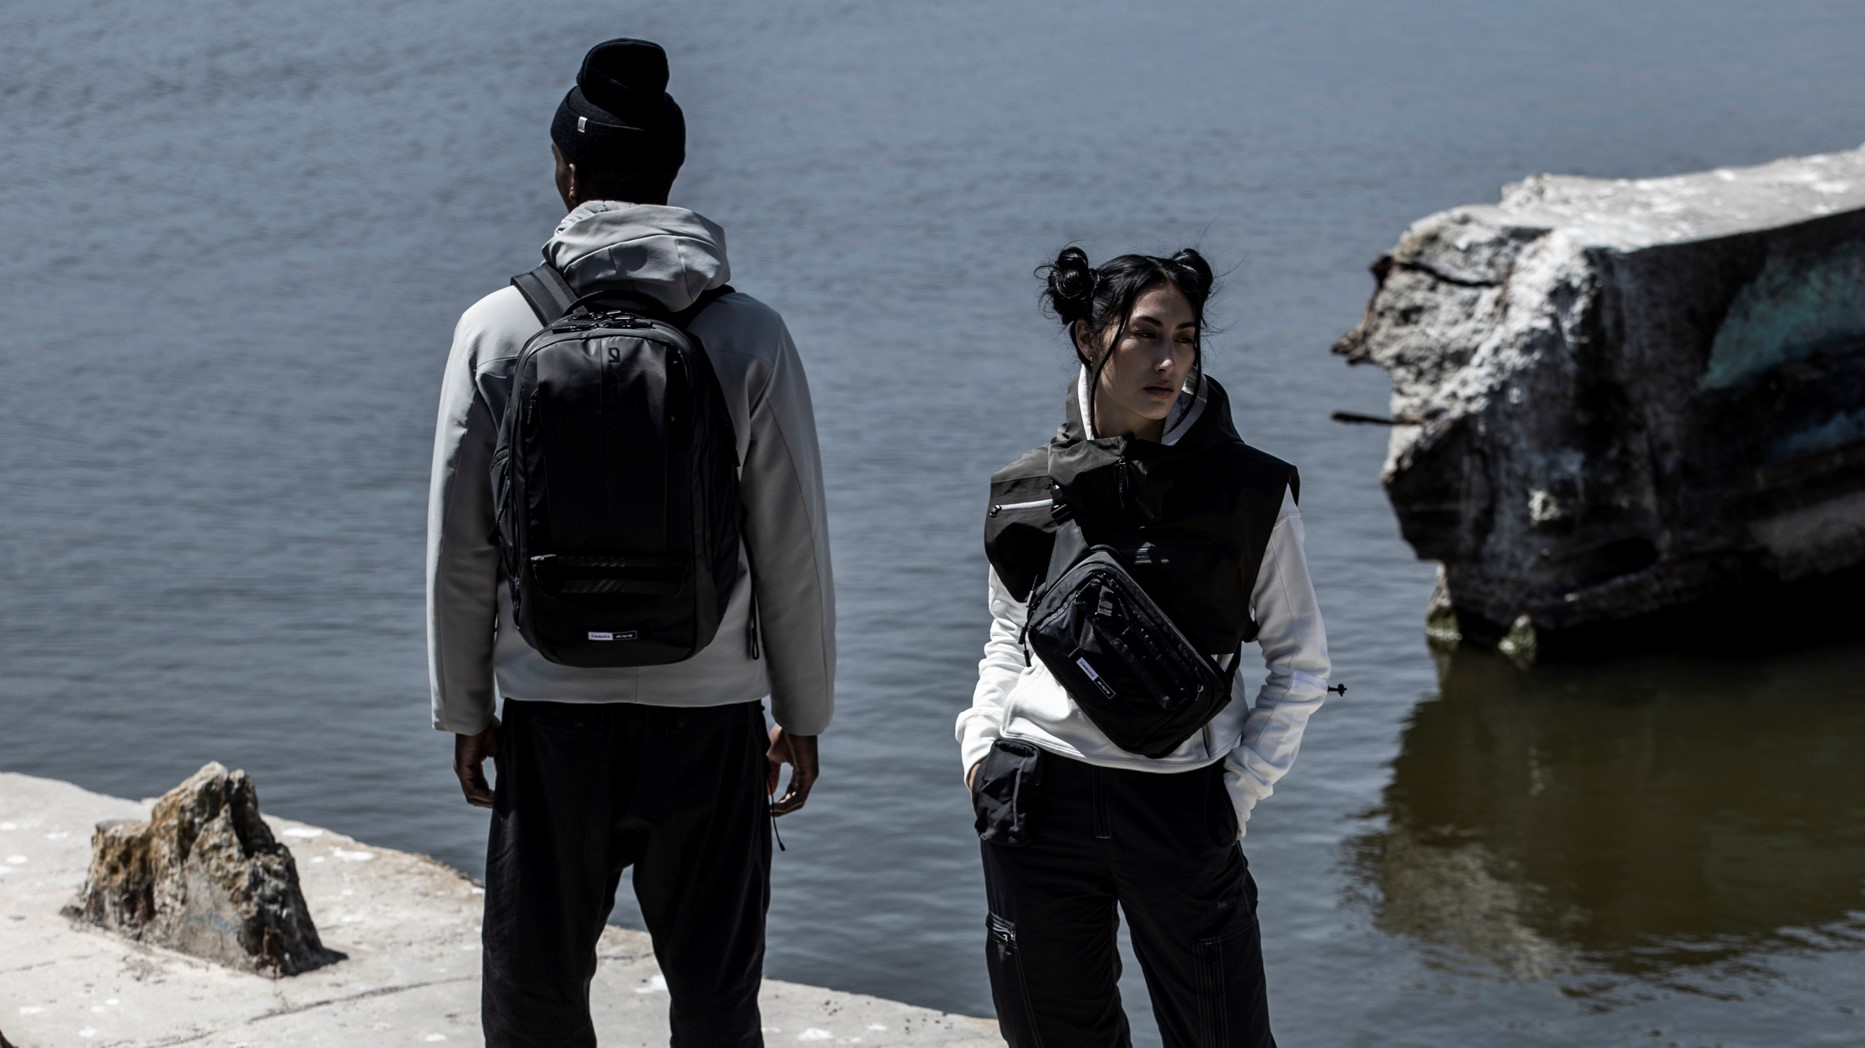 Two models. Female facing front with cross body bag and male model facing out to the ocean with back back.